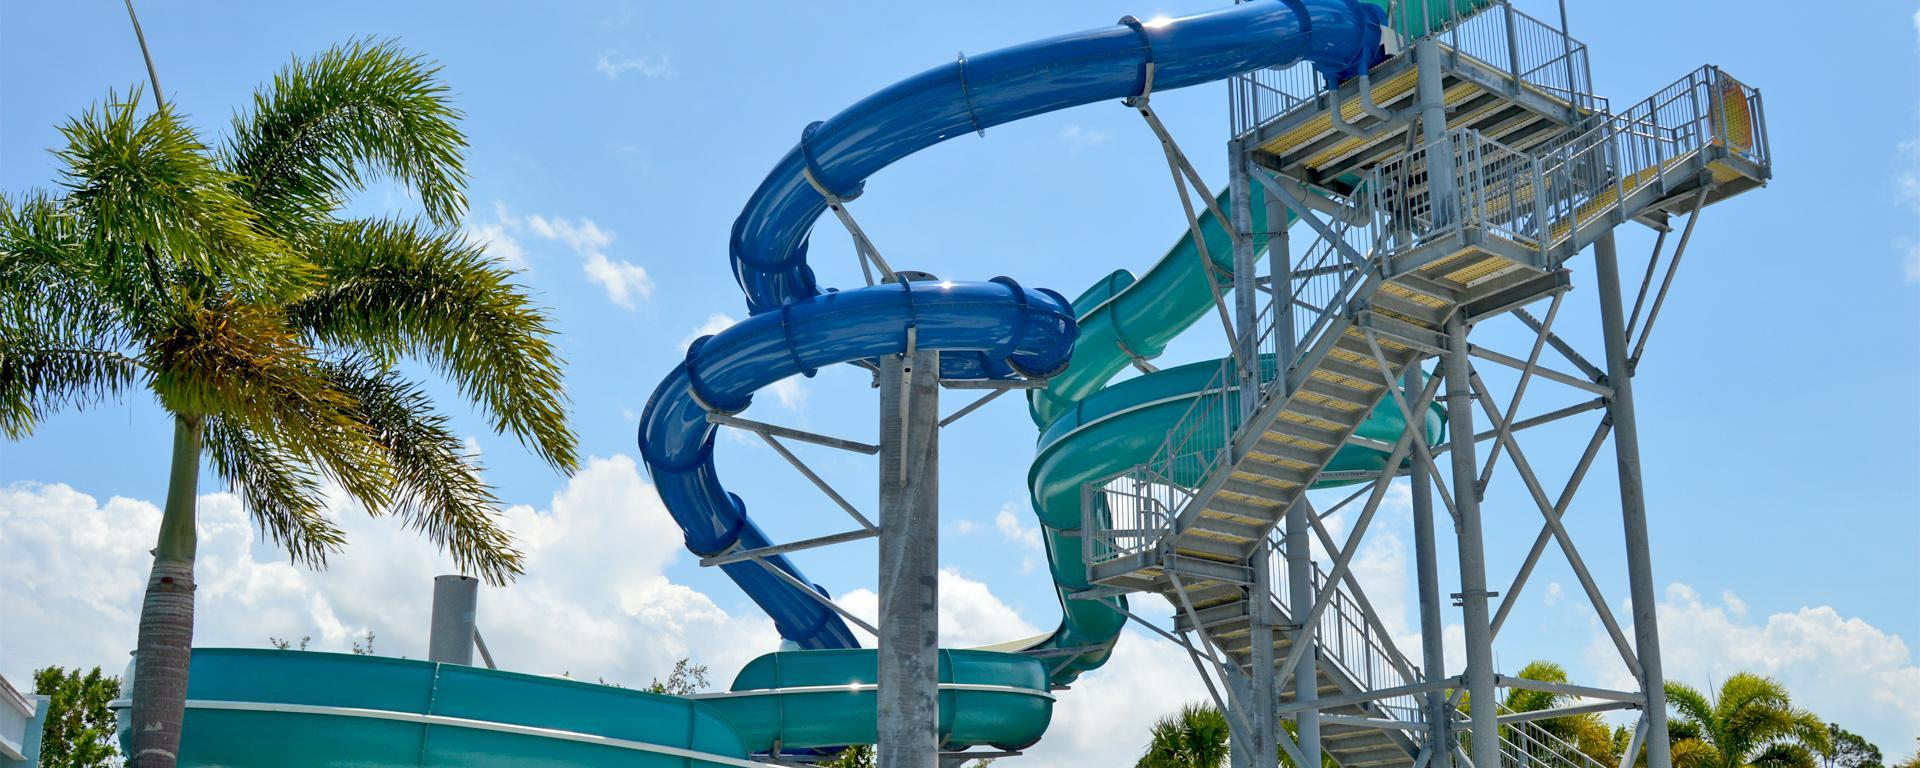 Sailfish Splash Waterpark